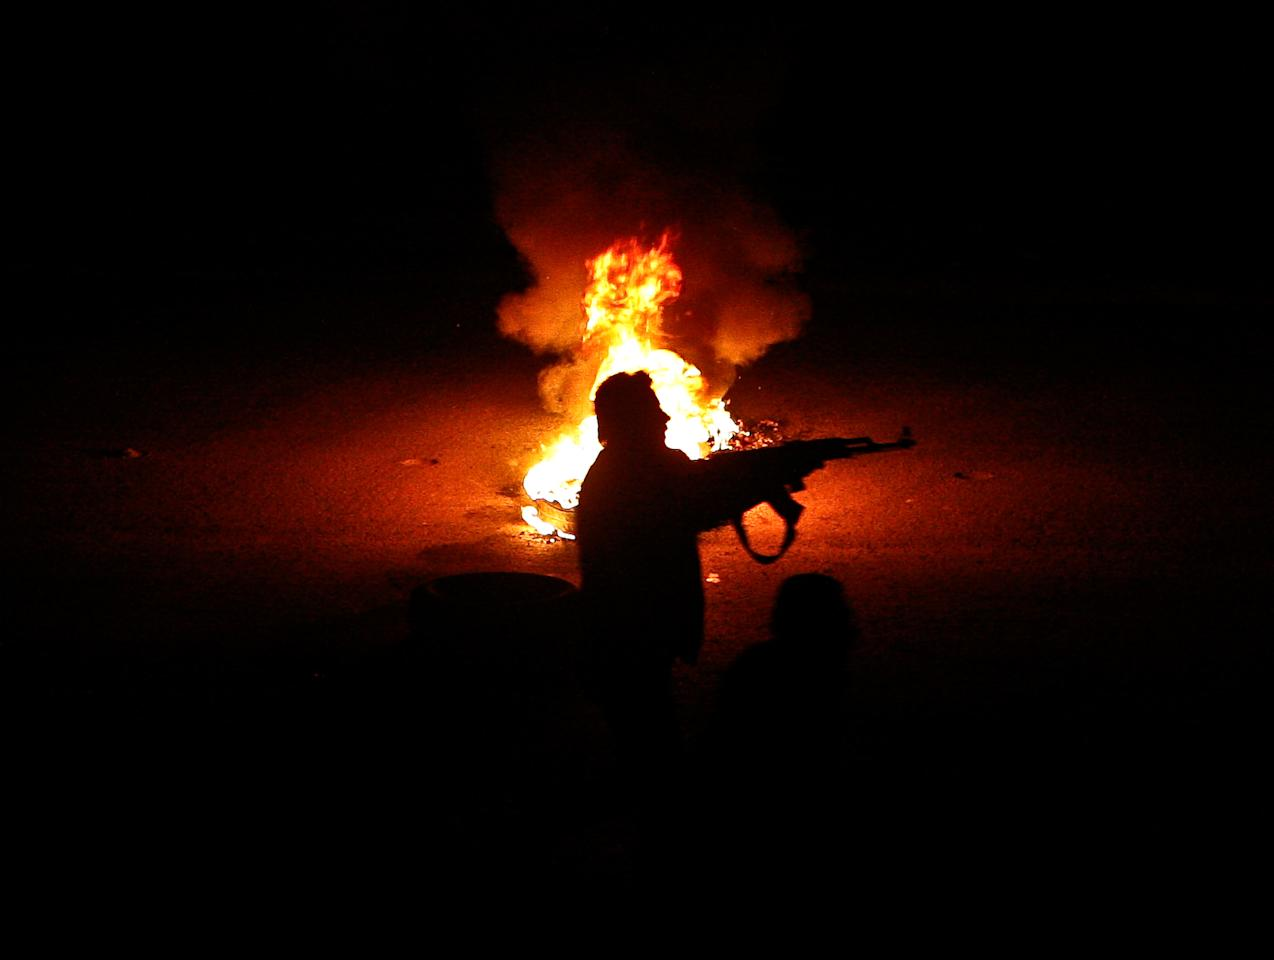 A Syrian rebel stands next to a flaming tire while firing at a Syrian army checkpoint, in a suburb of Damascus, Syria, on Saturday, March 17, 2012. Two suicide bombers detonated cars packed with explosives in near-simultaneous attacks on heavily guarded intelligence and security buildings in the Syrian capital Damascus Saturday, killing at least 27 people. (AP Photo)